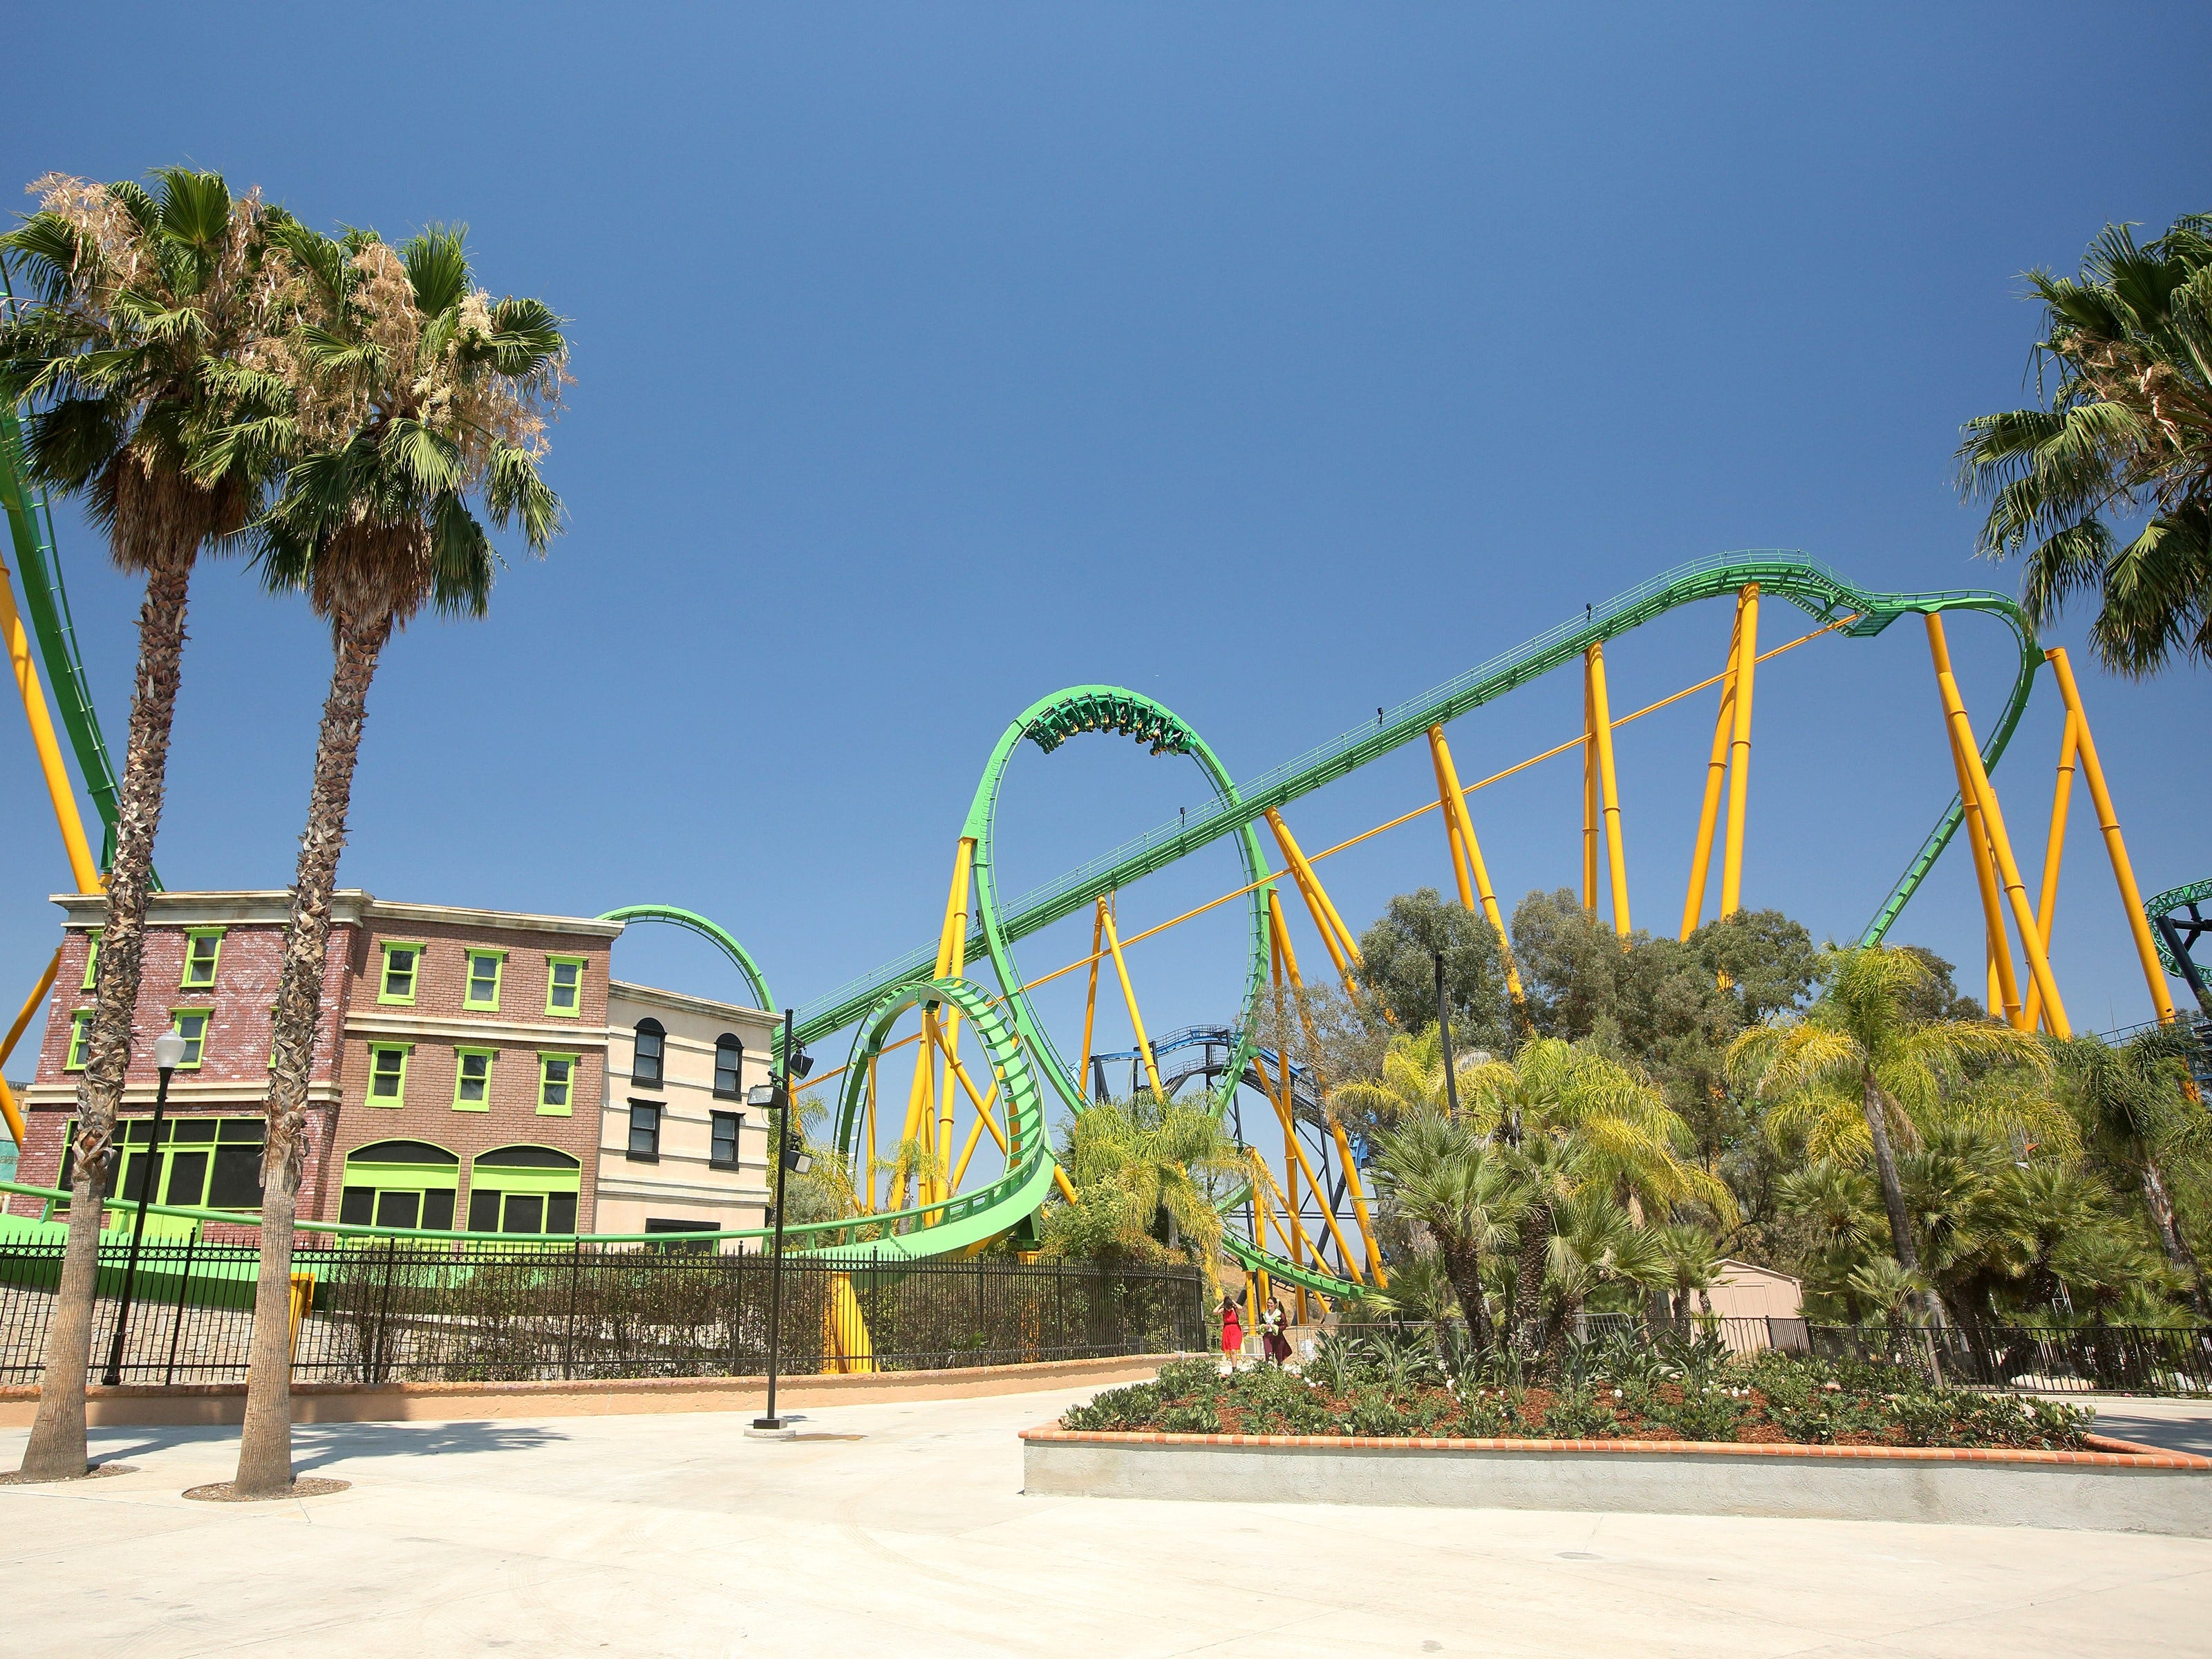 Six Flags Magic Mountain is known for its assortment of roller coasters.